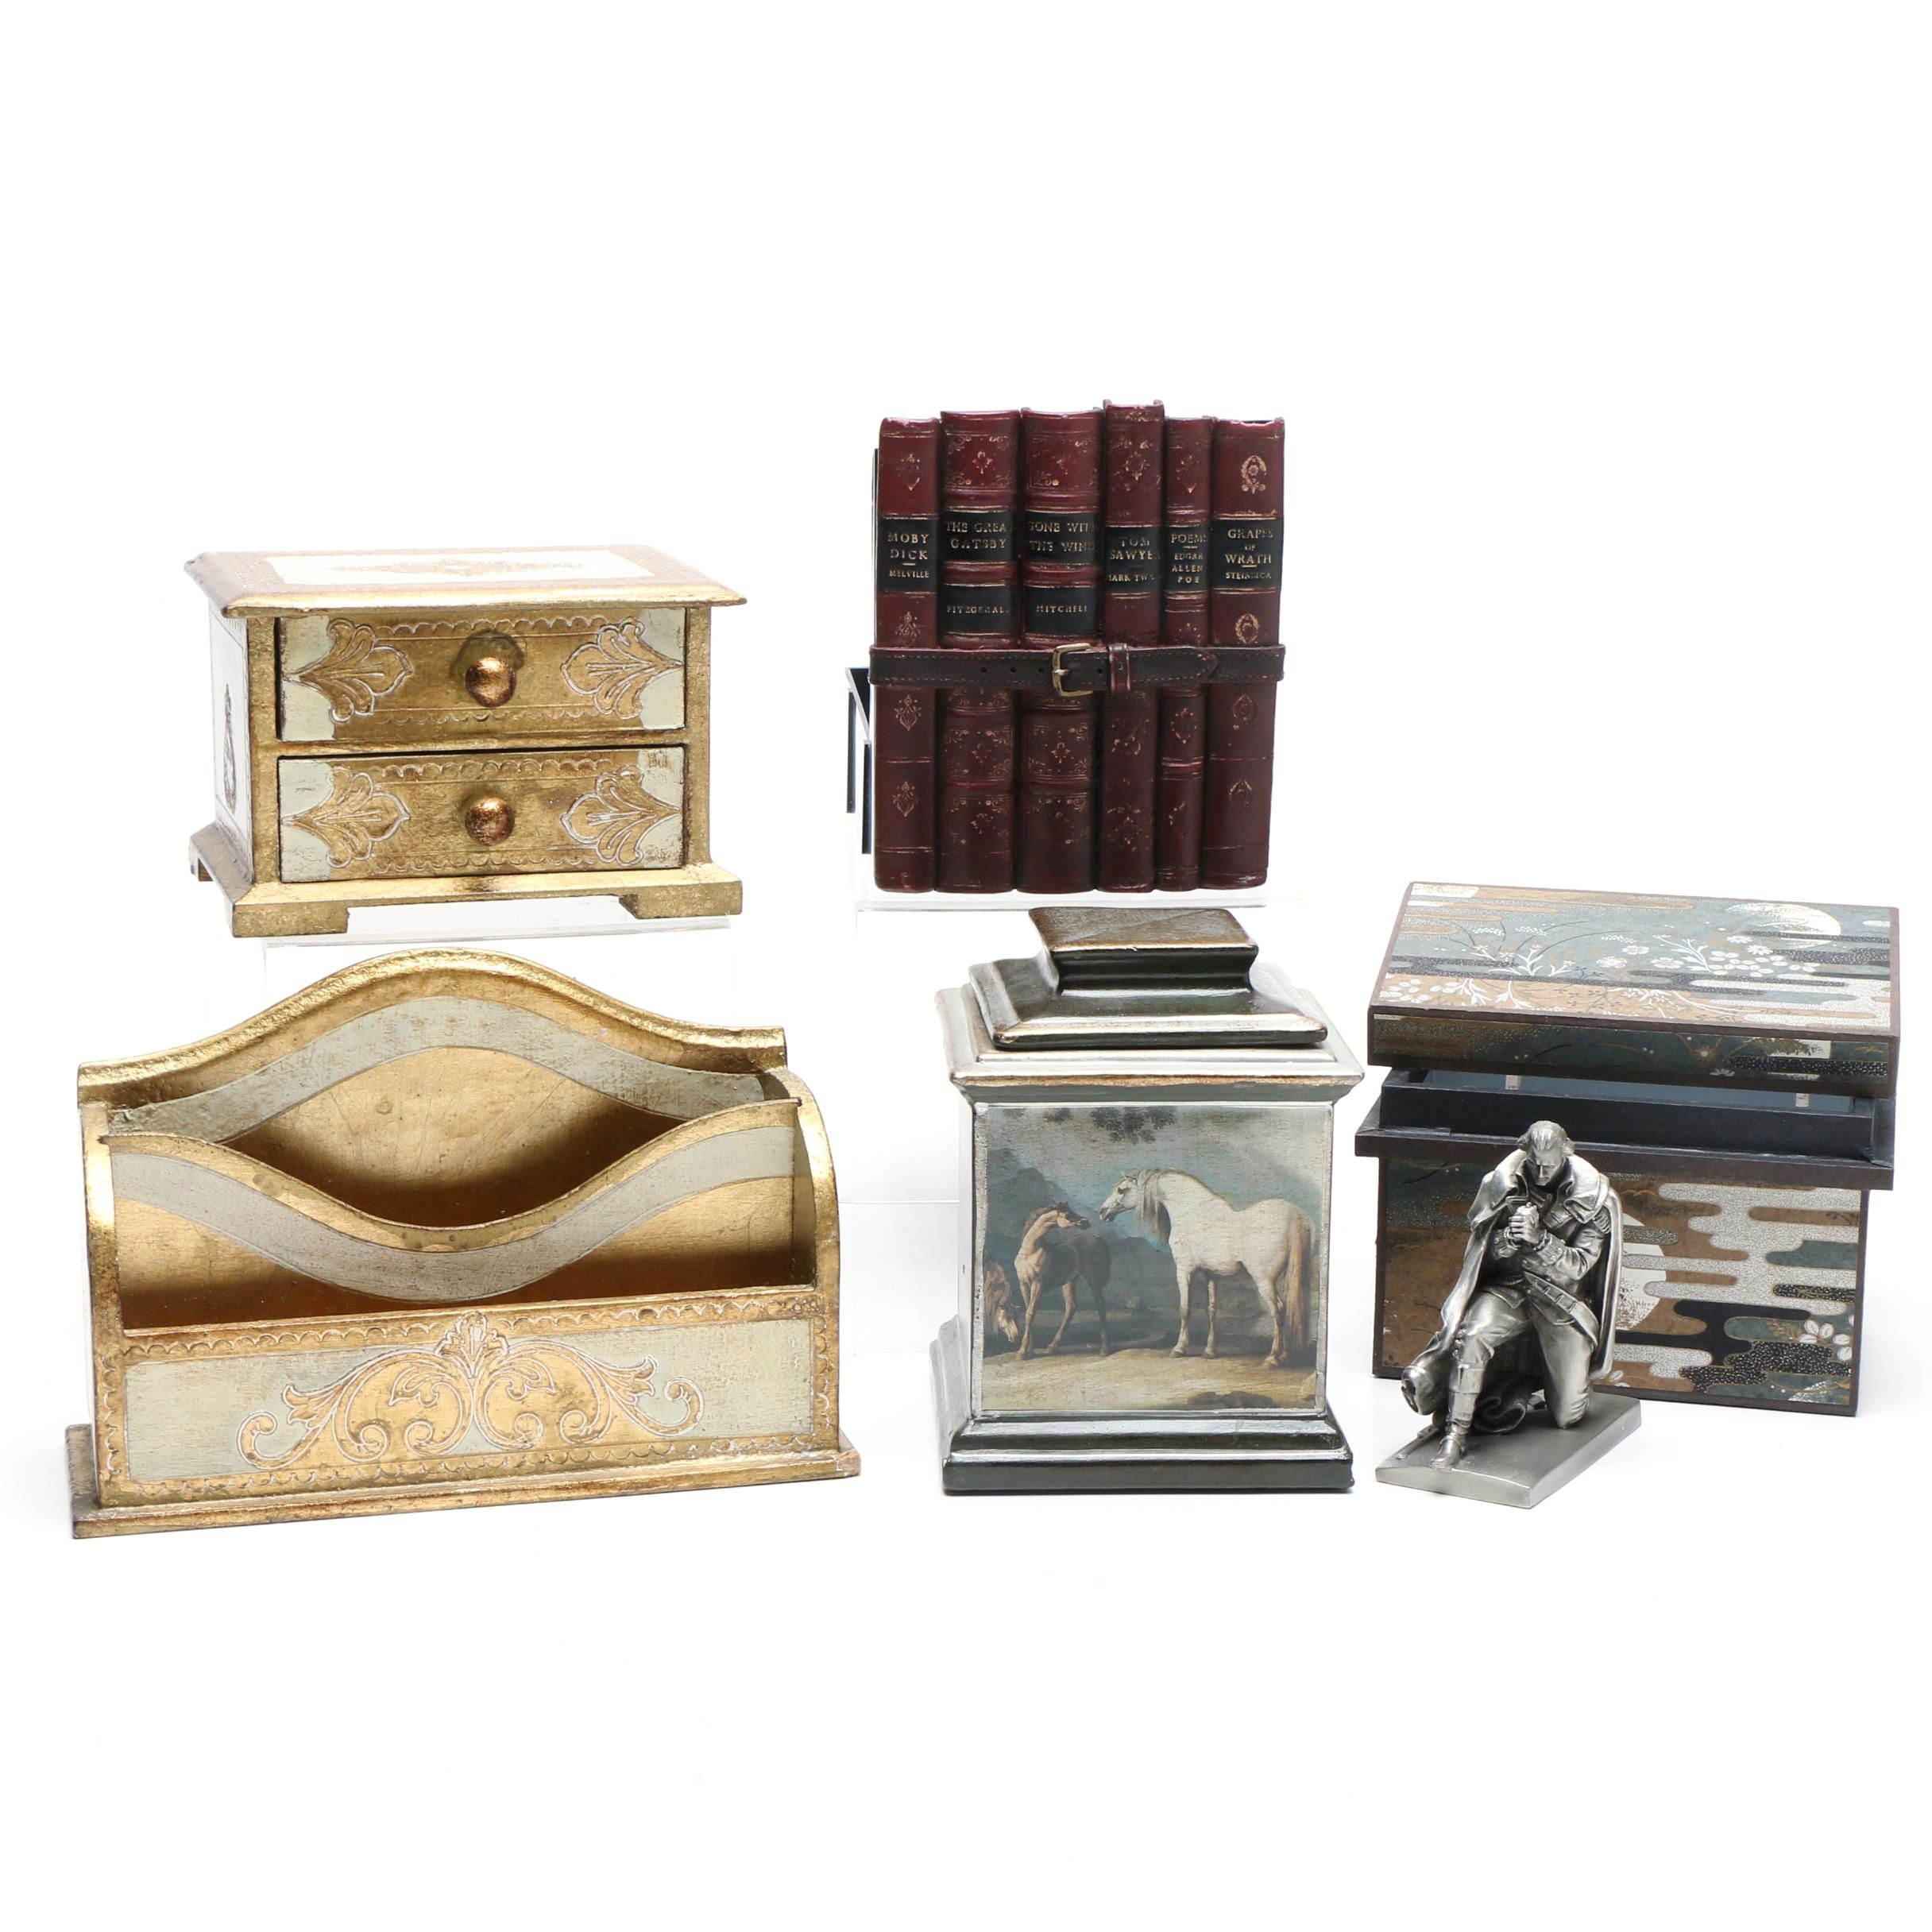 Decorative Storage Containers and More